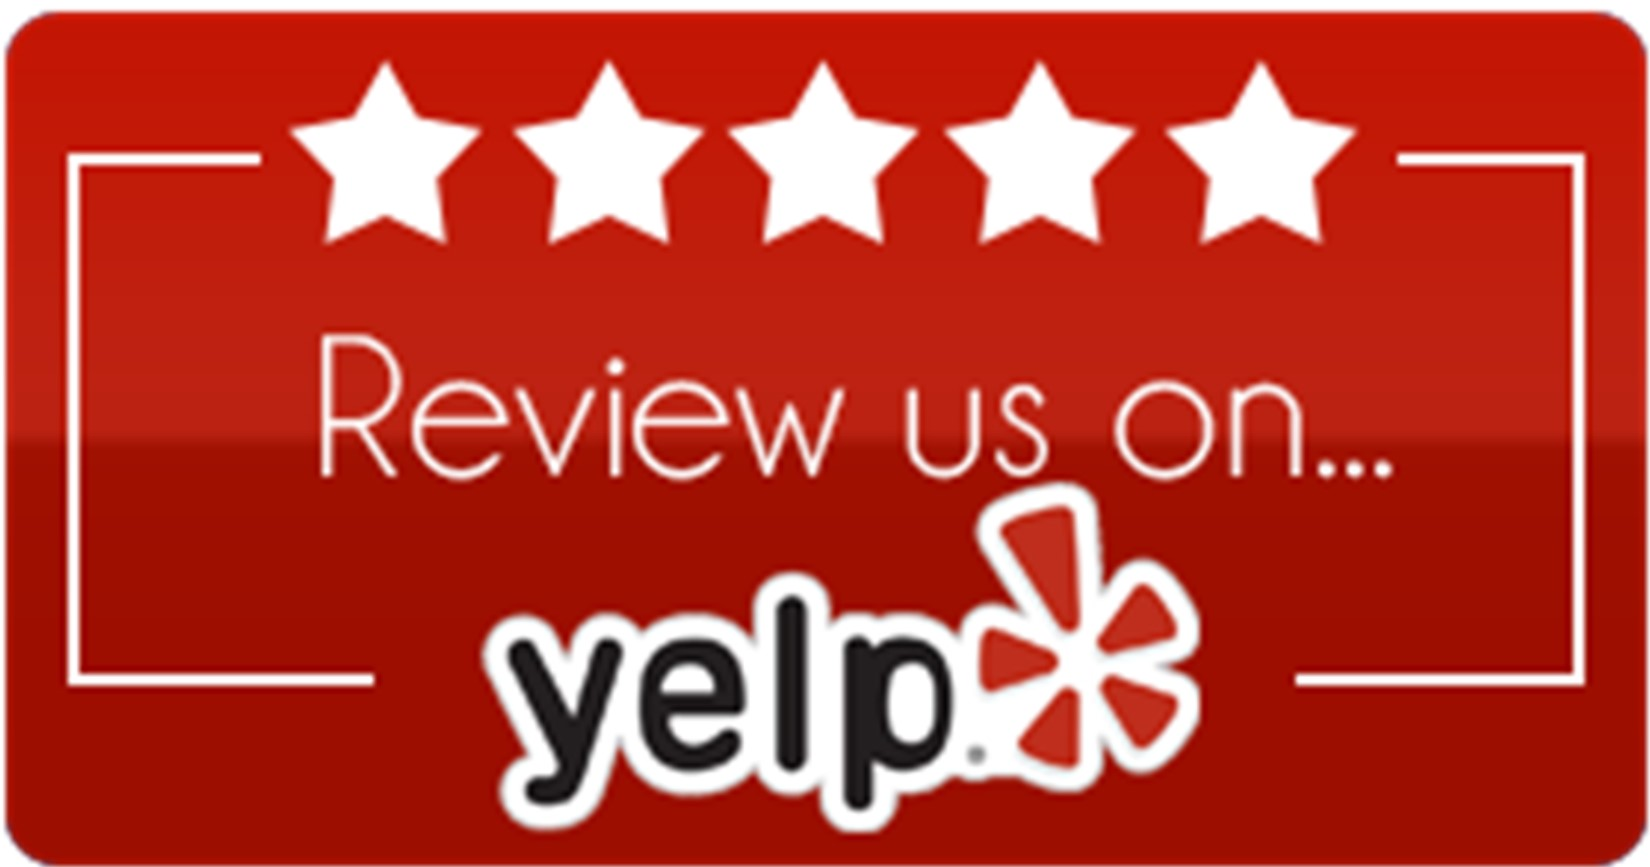 review-us-on-yelp.jpg